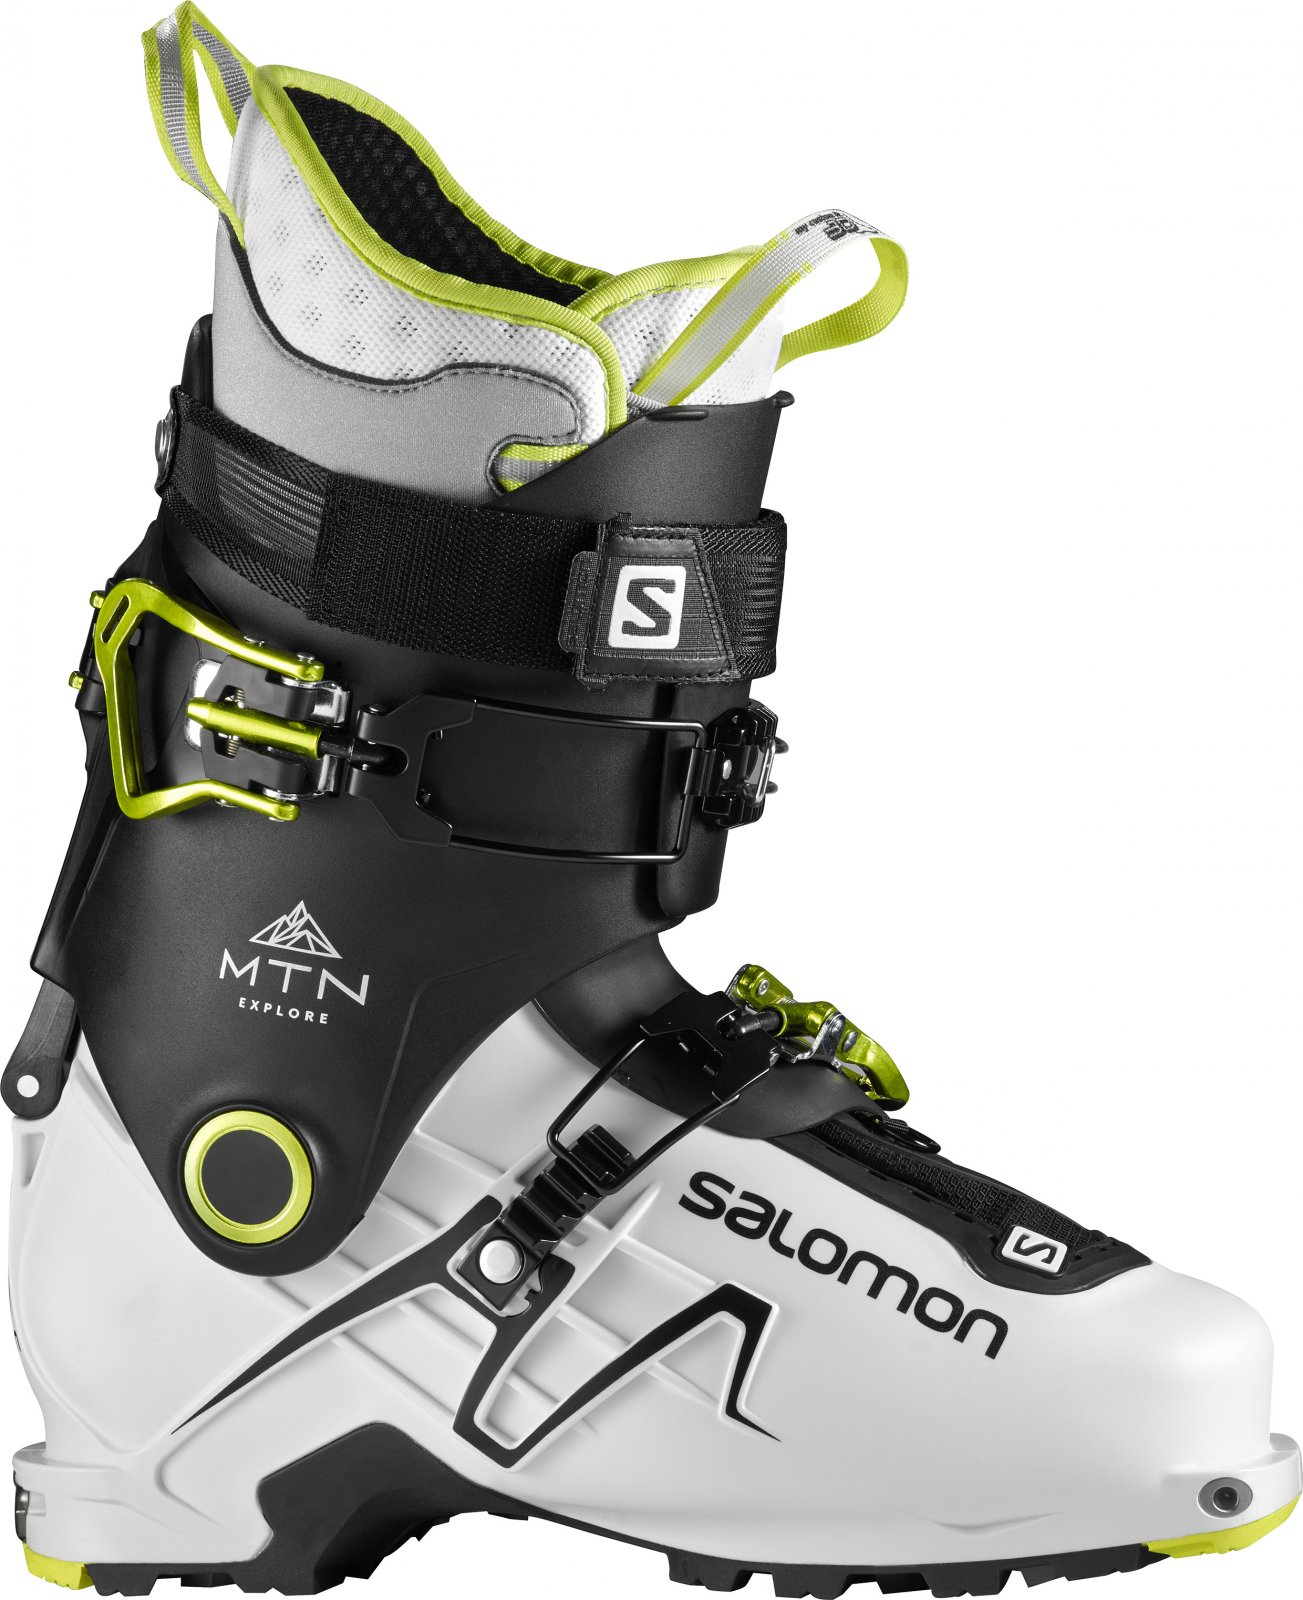 Salomon 2017 MTN Explore